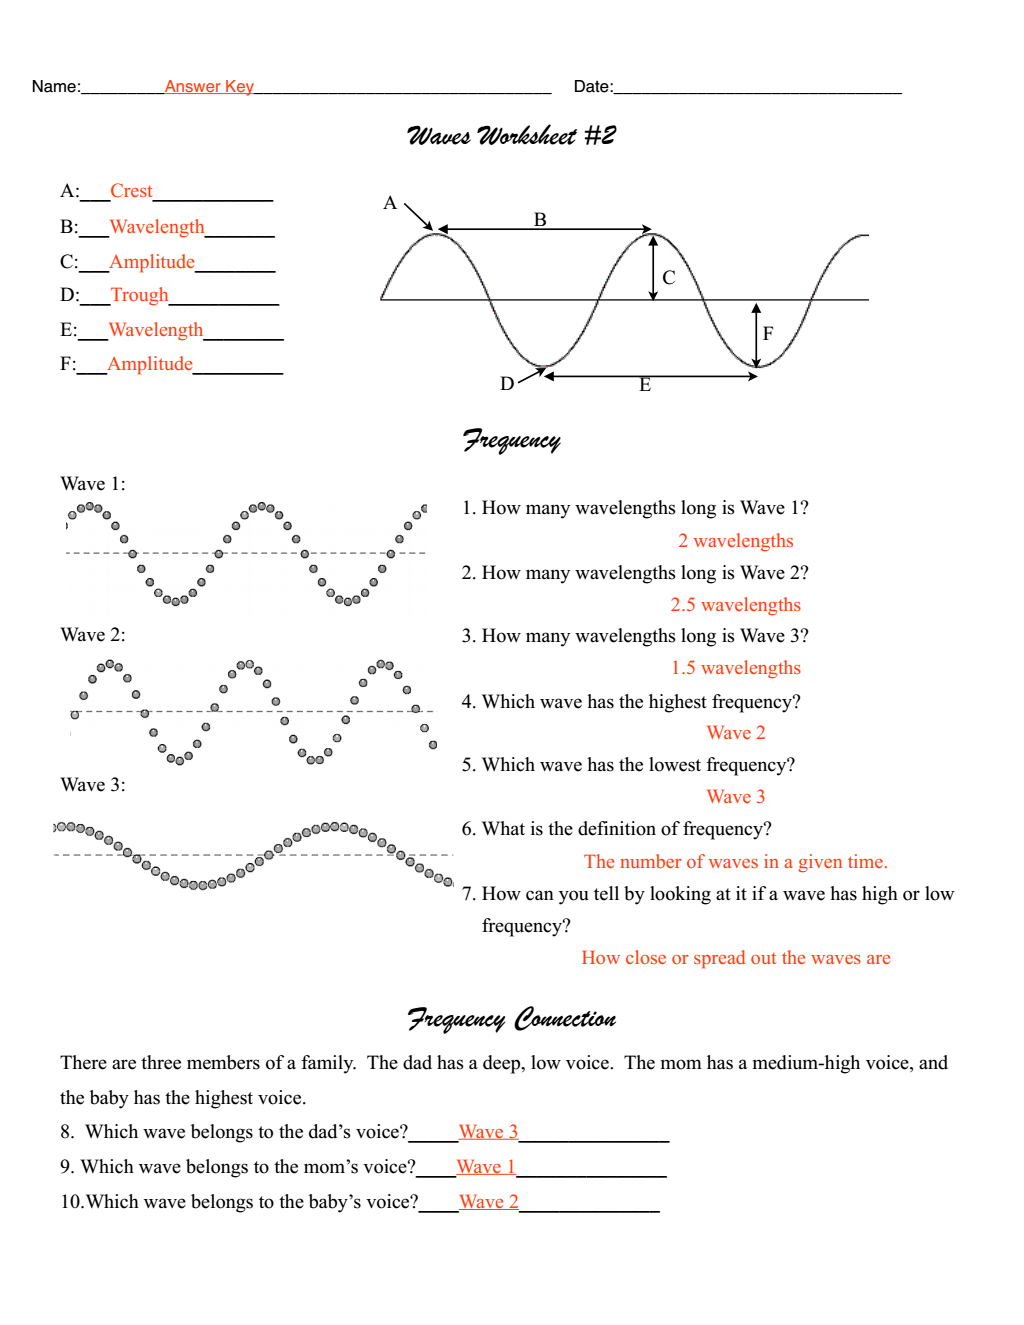 Waves Worksheet #2 Answers.pdf - Google Drive   Worksheets [ 1325 x 1024 Pixel ]